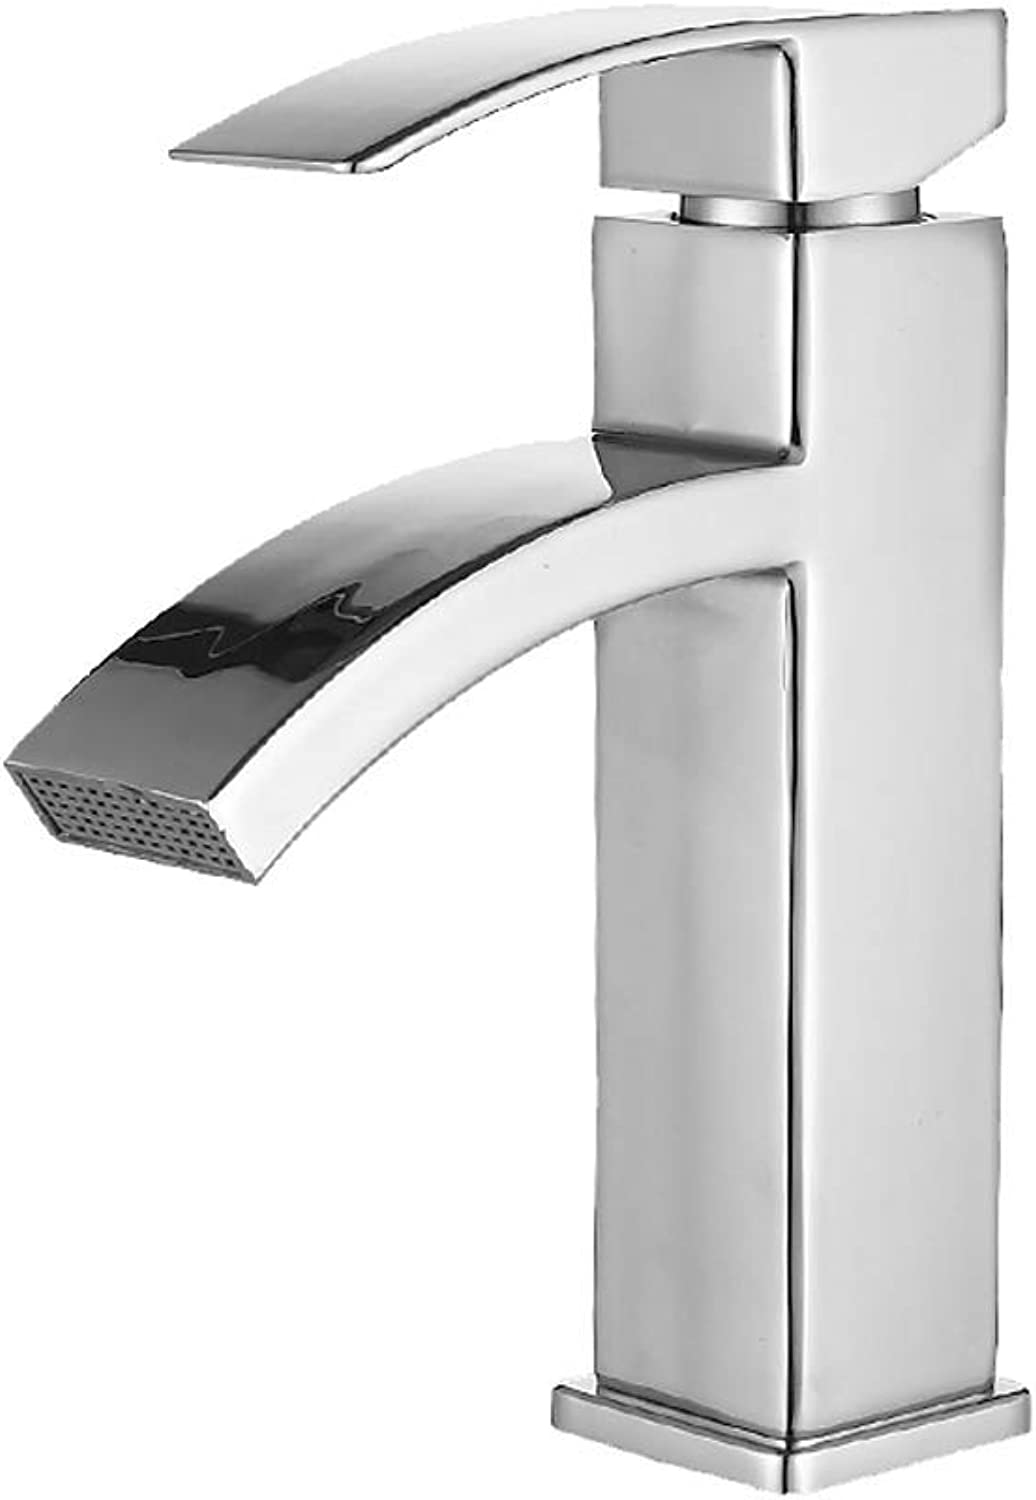 DYR Faucet Face Basin Faucet Hot and Cold Faucet Counter Basin Sink Faucet Waterfalls High end faucet